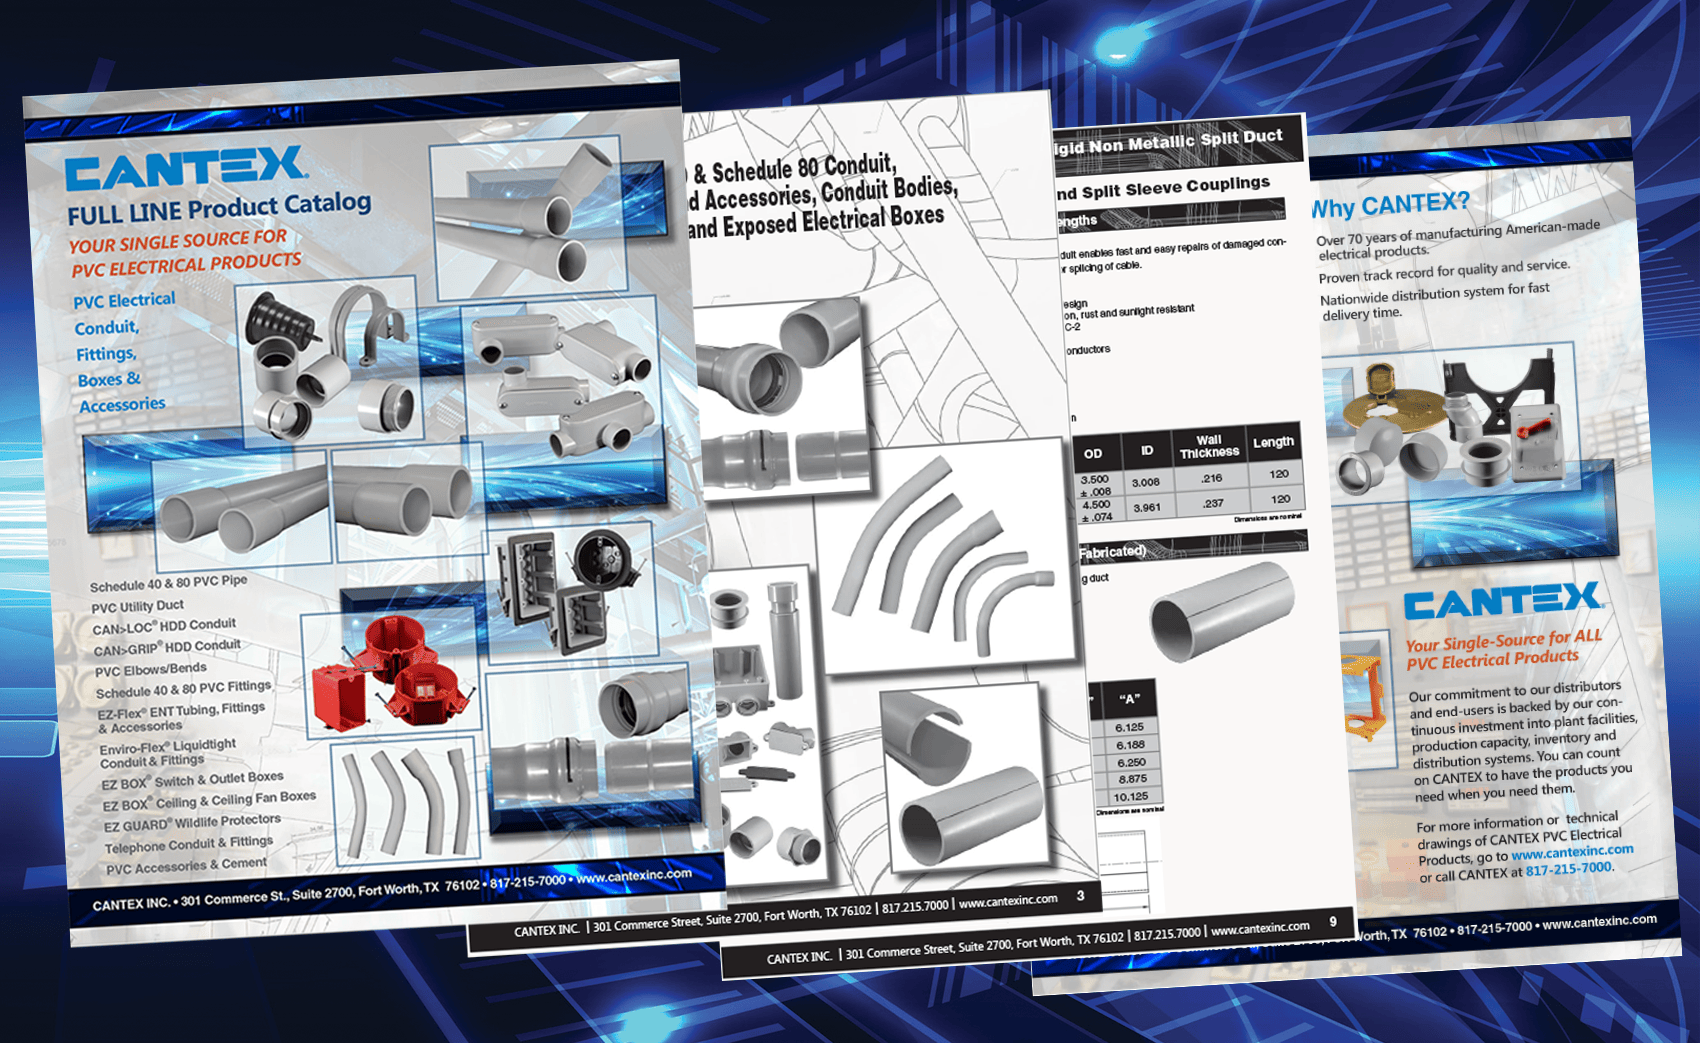 CANTEX LAUNCHES A NEW FULL LINE PVC ELECTRICAL PRODUCT PRINT CATALOG